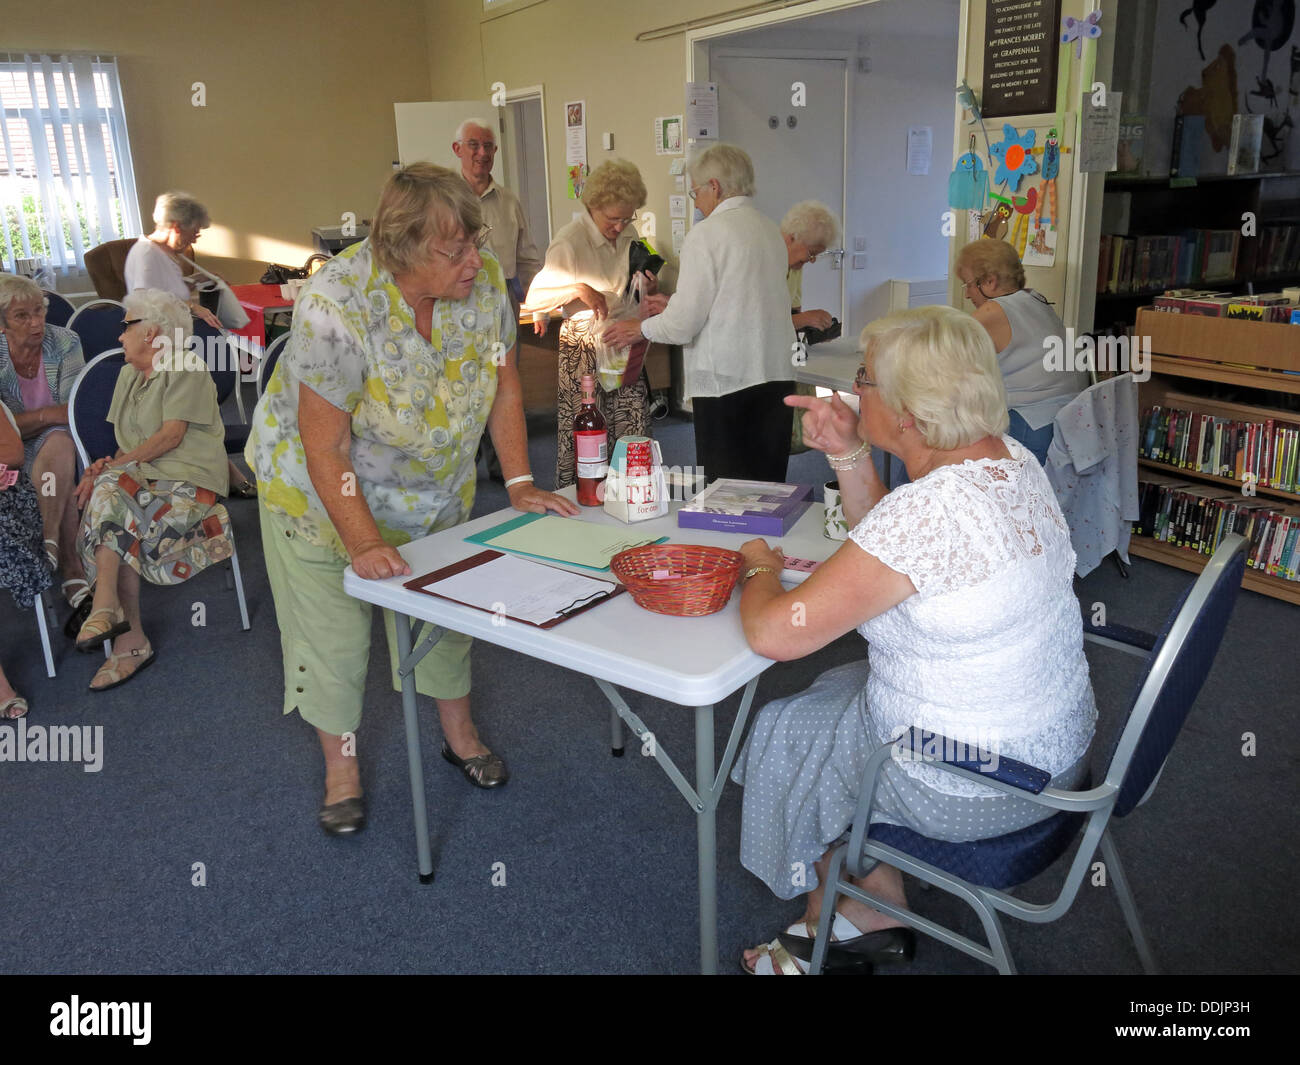 WI Group at Grappenhall Community Library, Warrington, Cheshire, England, WA4 2PL - Stock Image